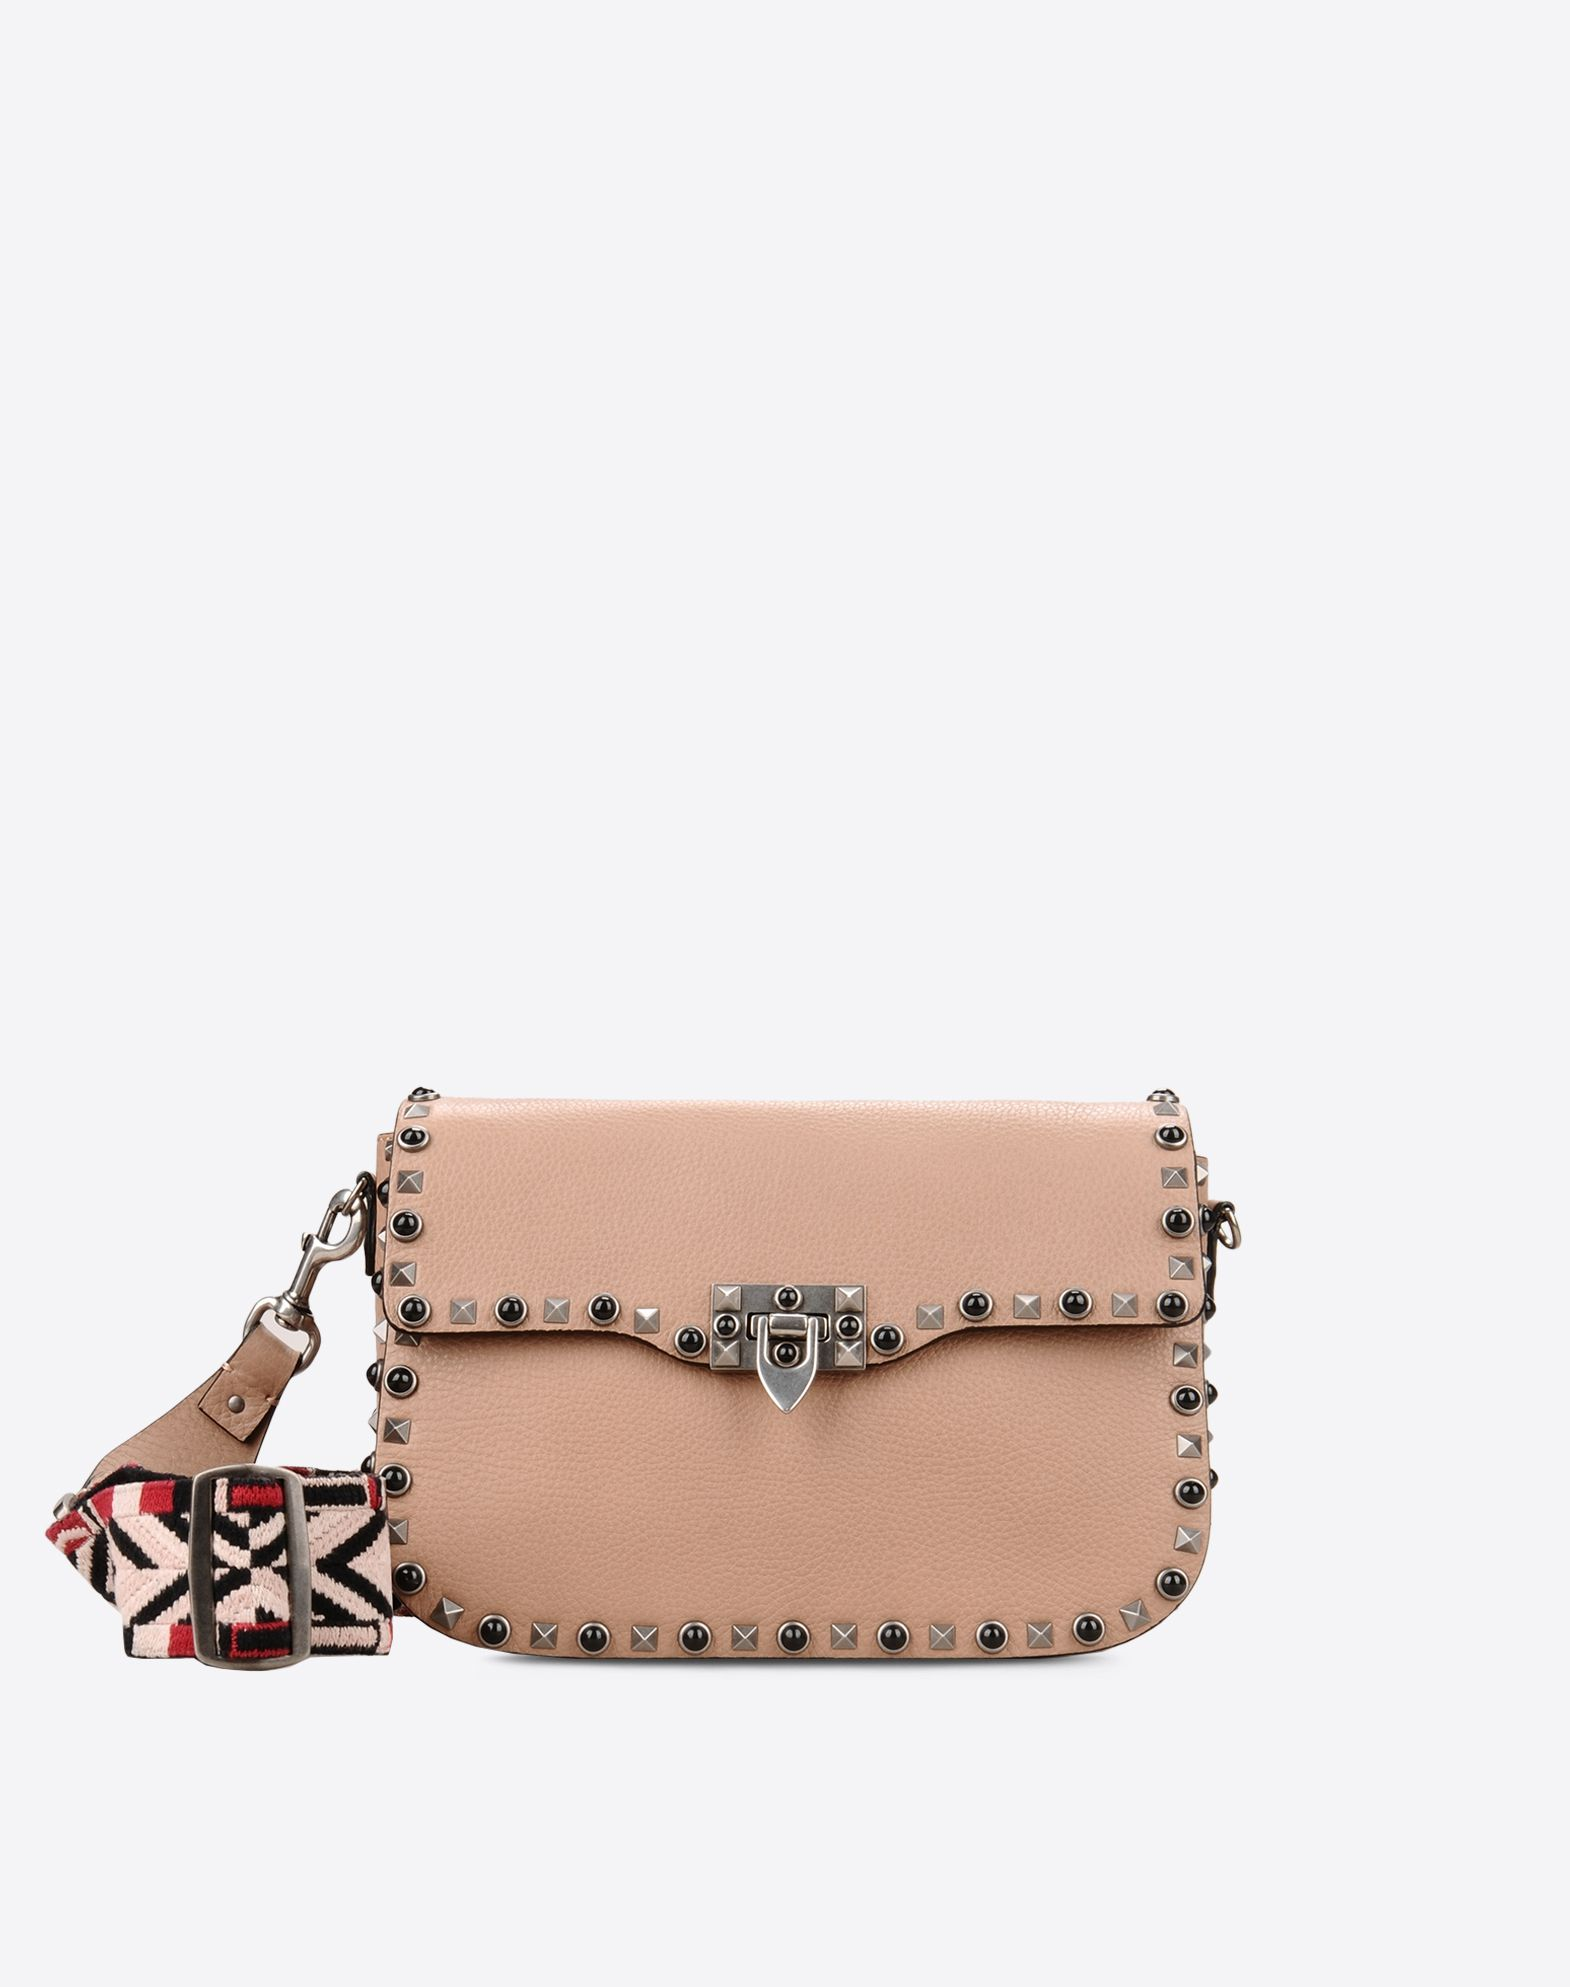 Valentino Garavani The Rockstud Rolling Textured-leather Shoulder Bag - Black Valentino 8Q5AqJpQ6C